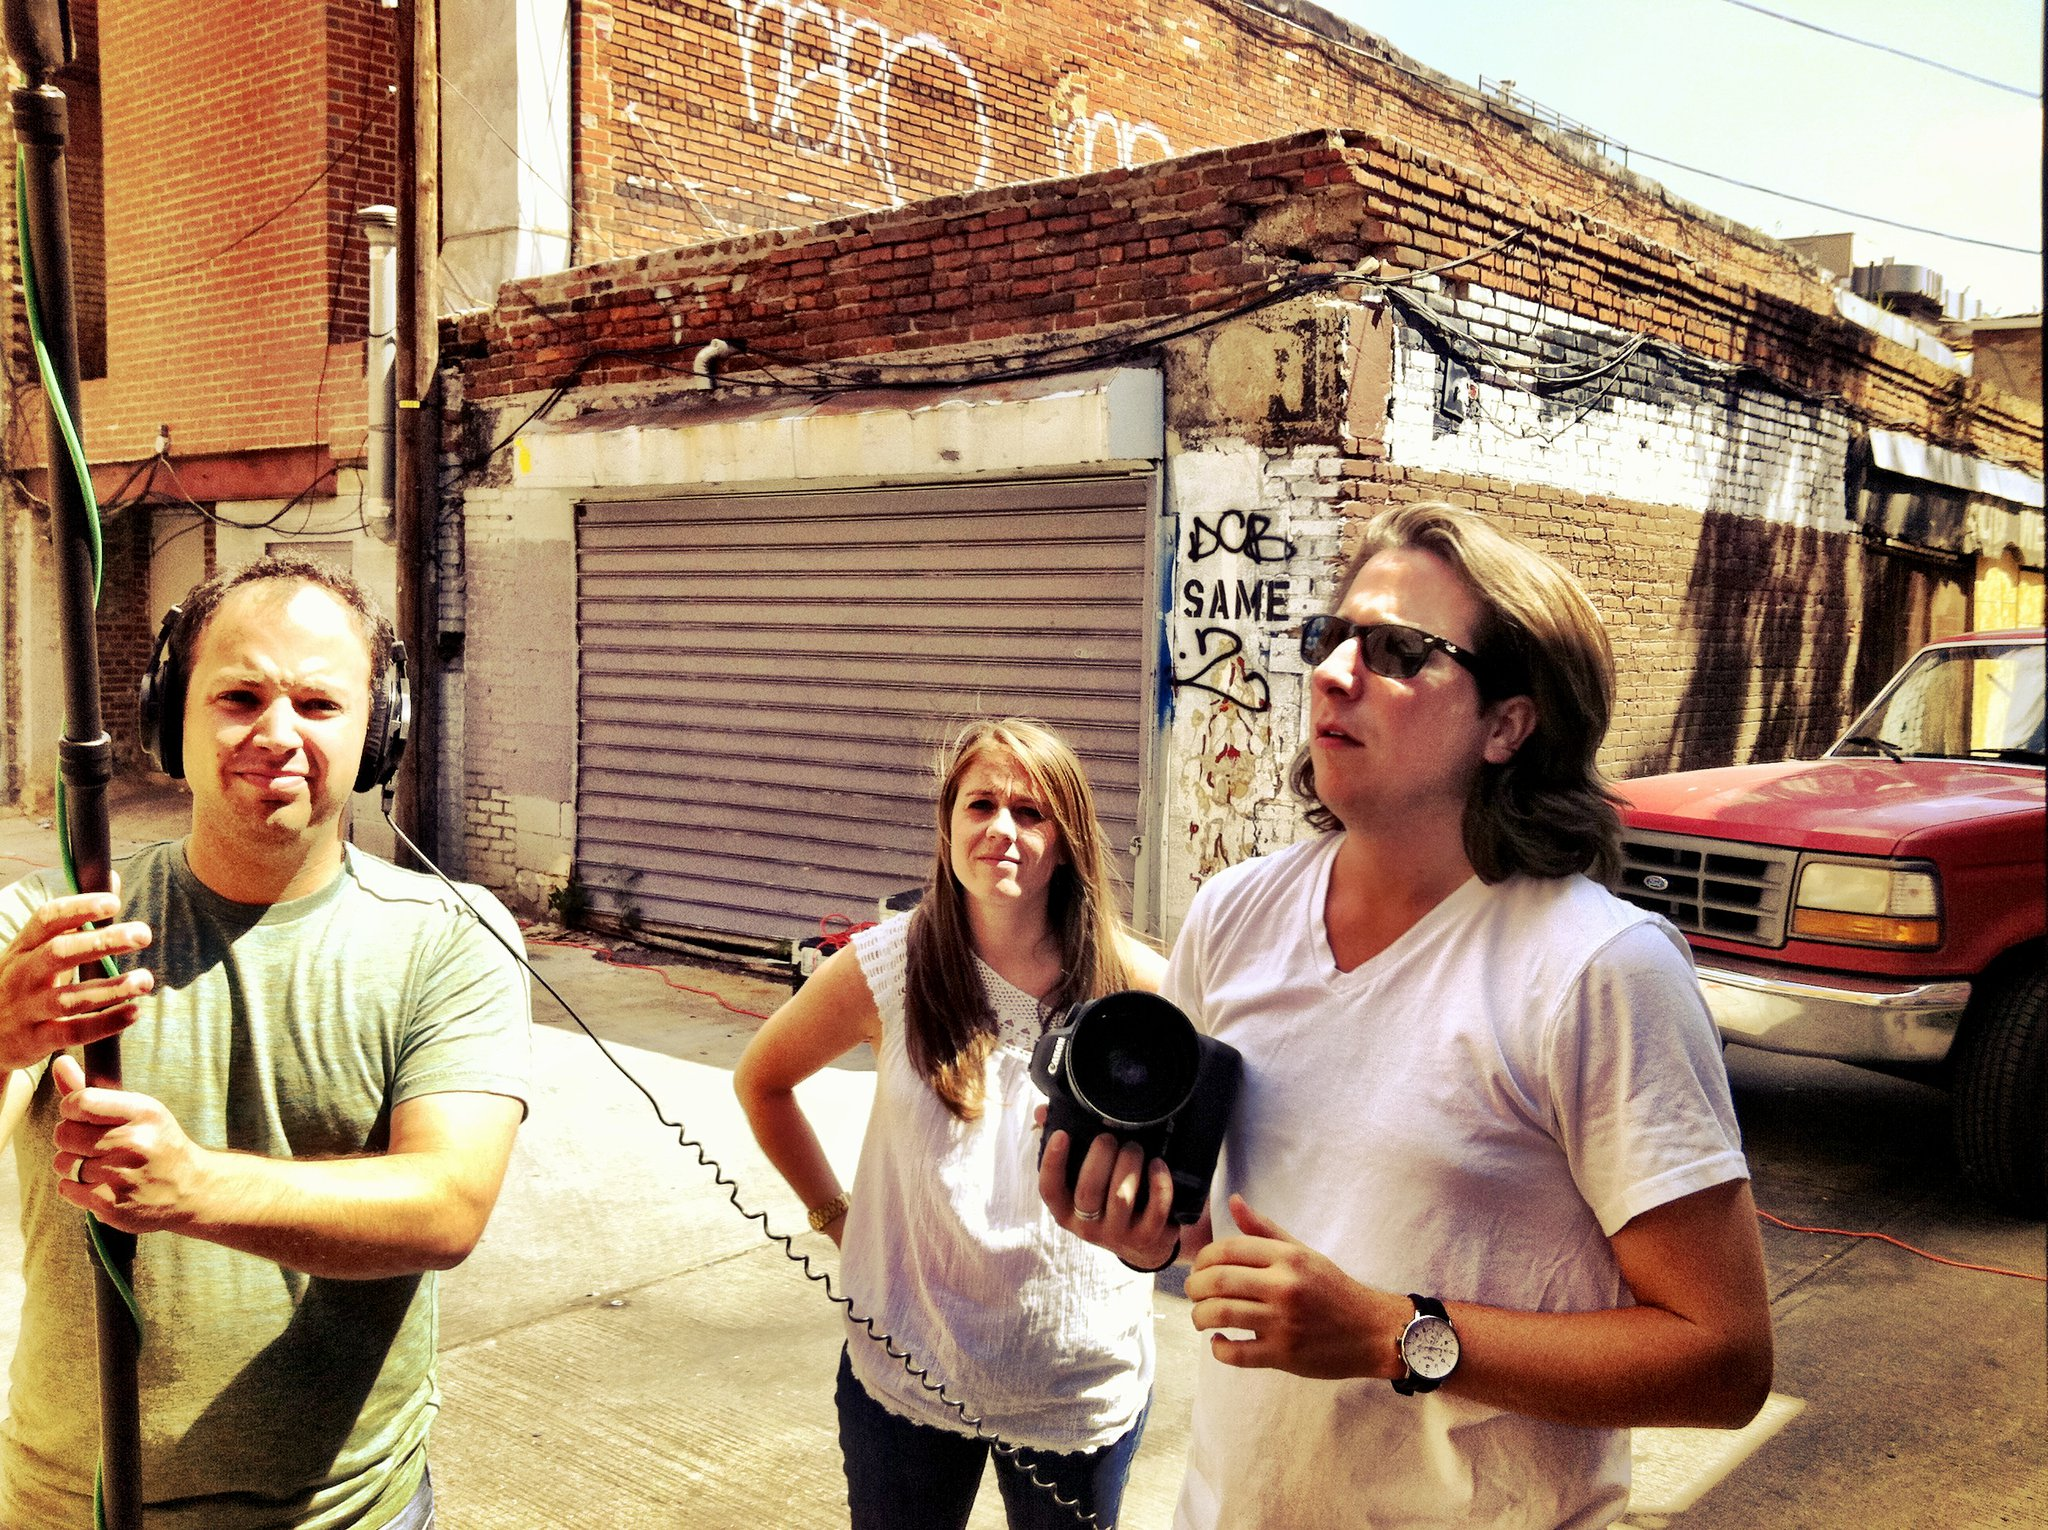 Part of the Influential team filming a commercial. (©2011 Justin Schuck. All rights reserved.)